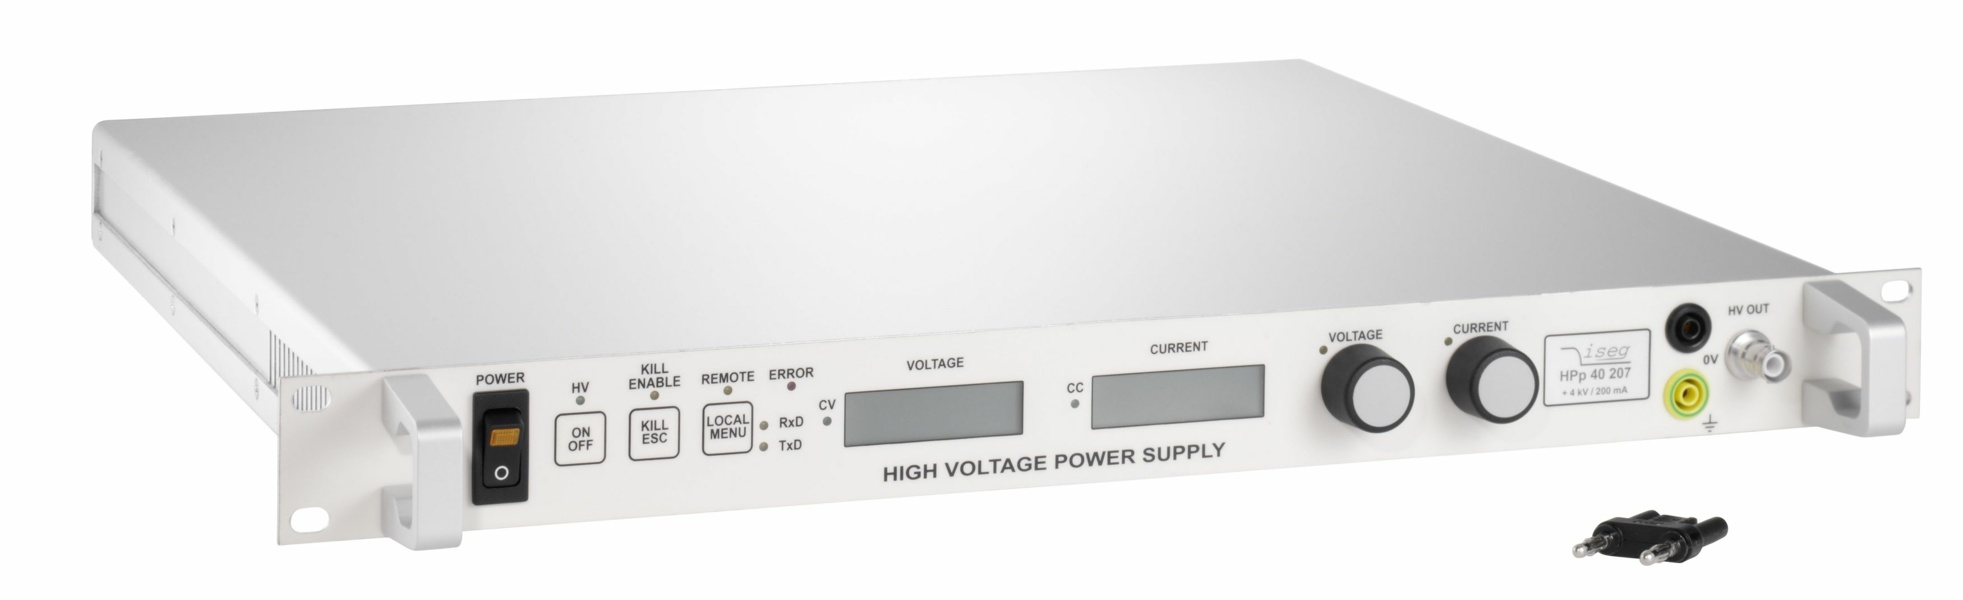 iseg HPS/LPS - AC mains supplied, modular HV power supply with manual front panel operation, 1-80 kV, 300 W-3 kW